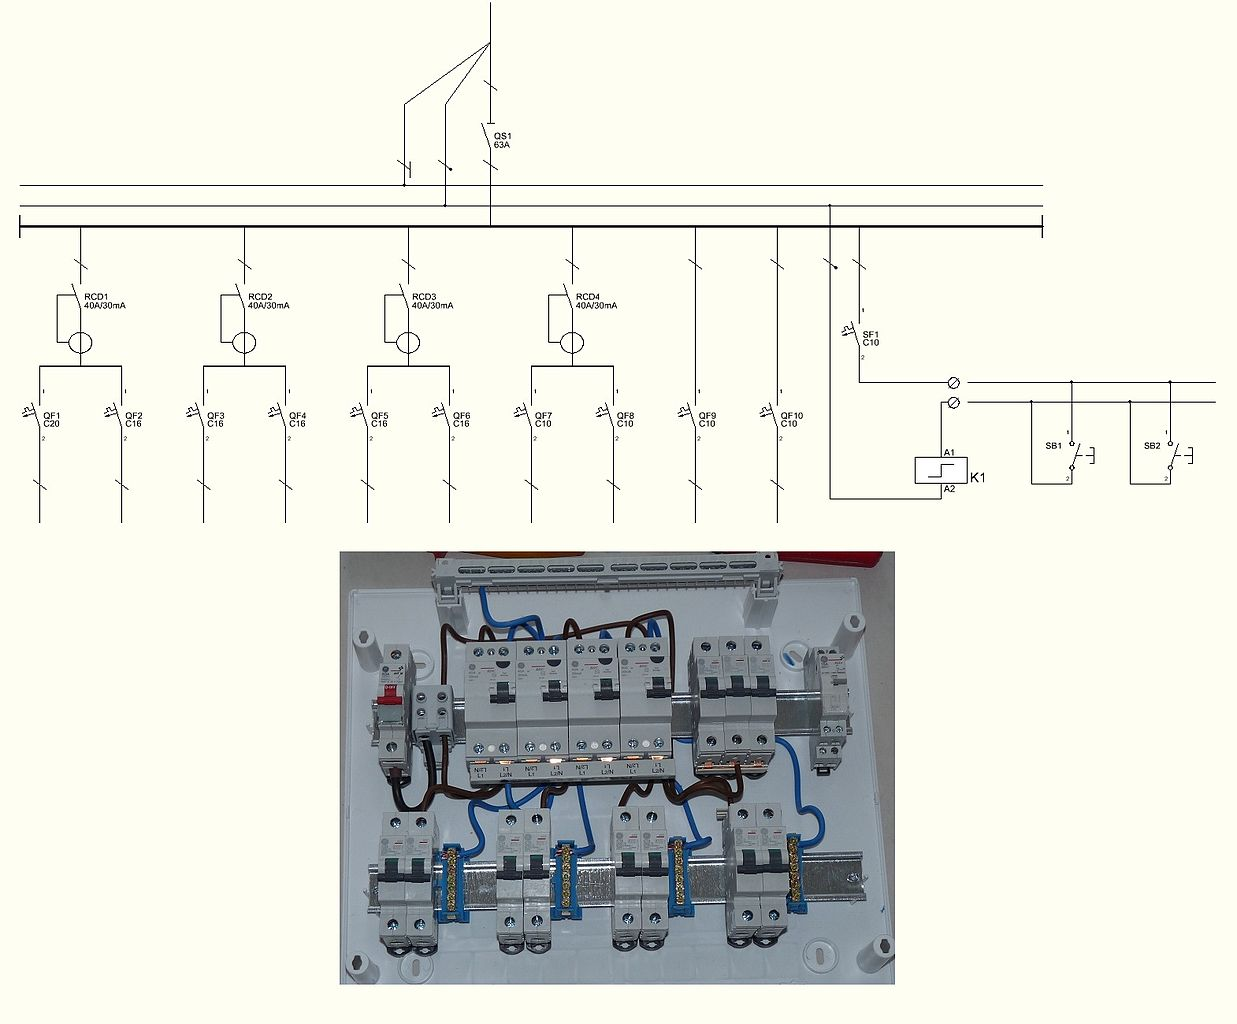 hight resolution of file example of one line wiring diagram of fuse box jpg wikimedia rh commons wikimedia org